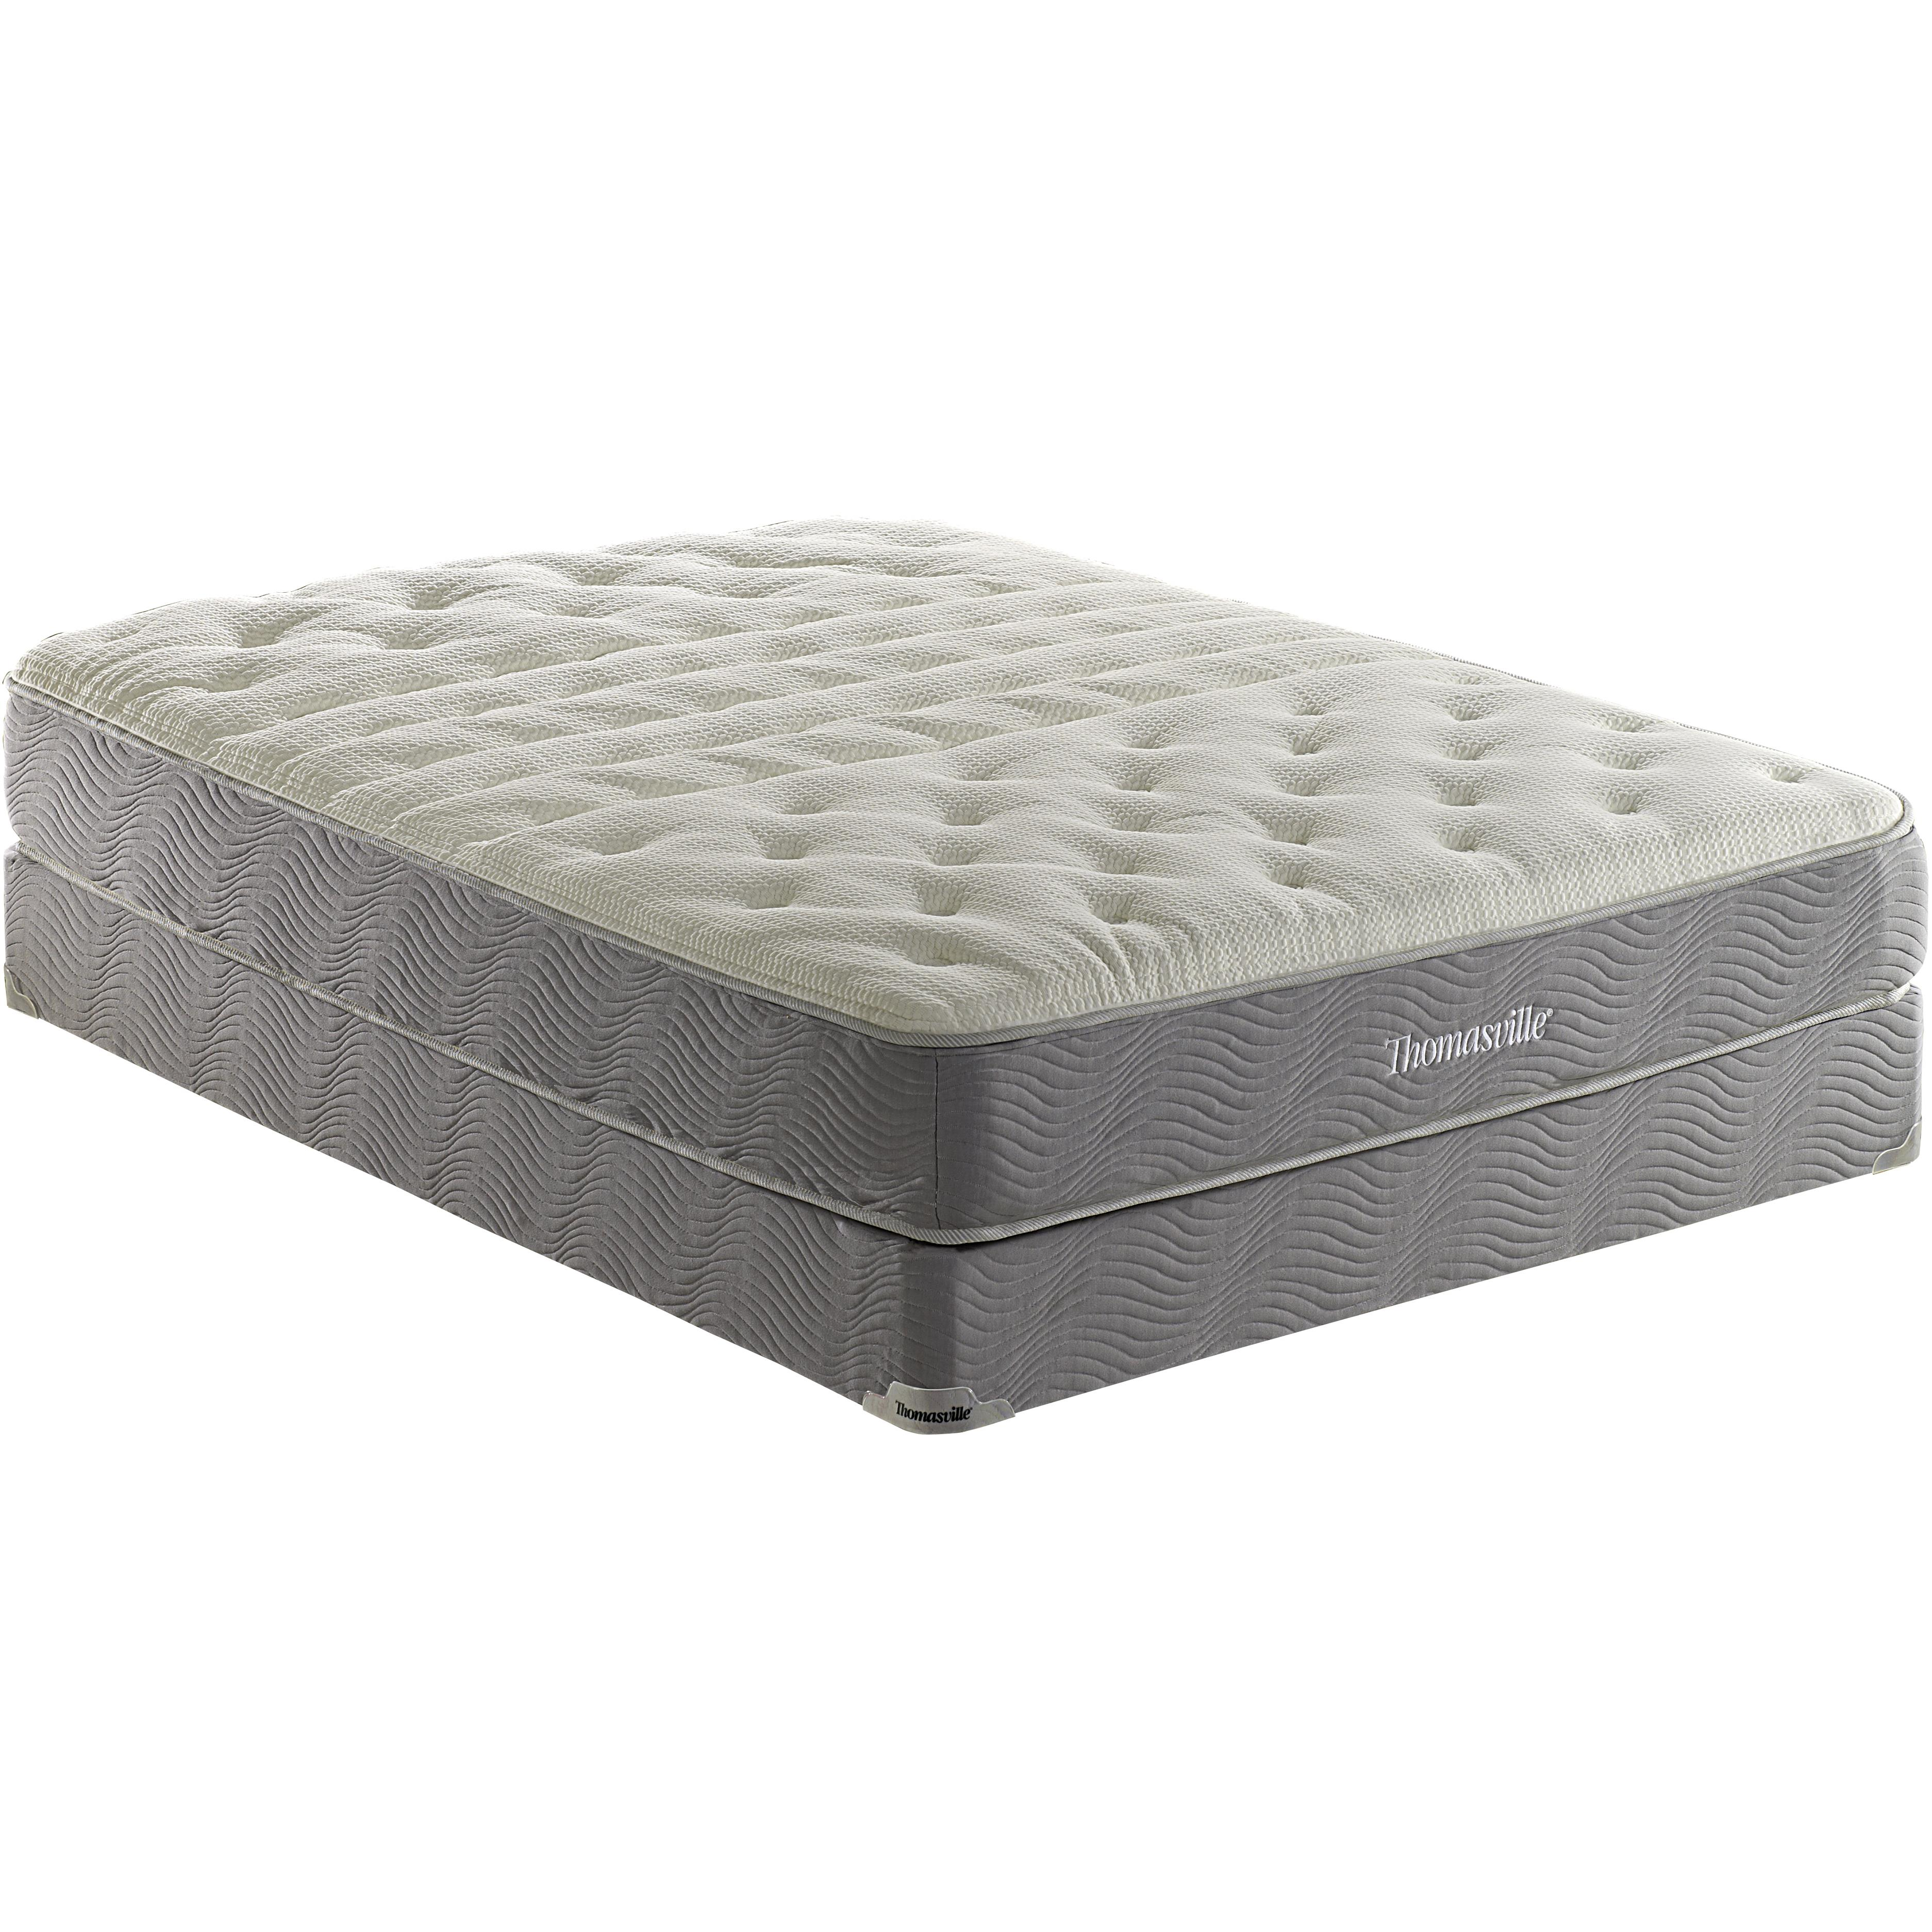 Twin XL Adjustable Dual Zone Airbed Mattress